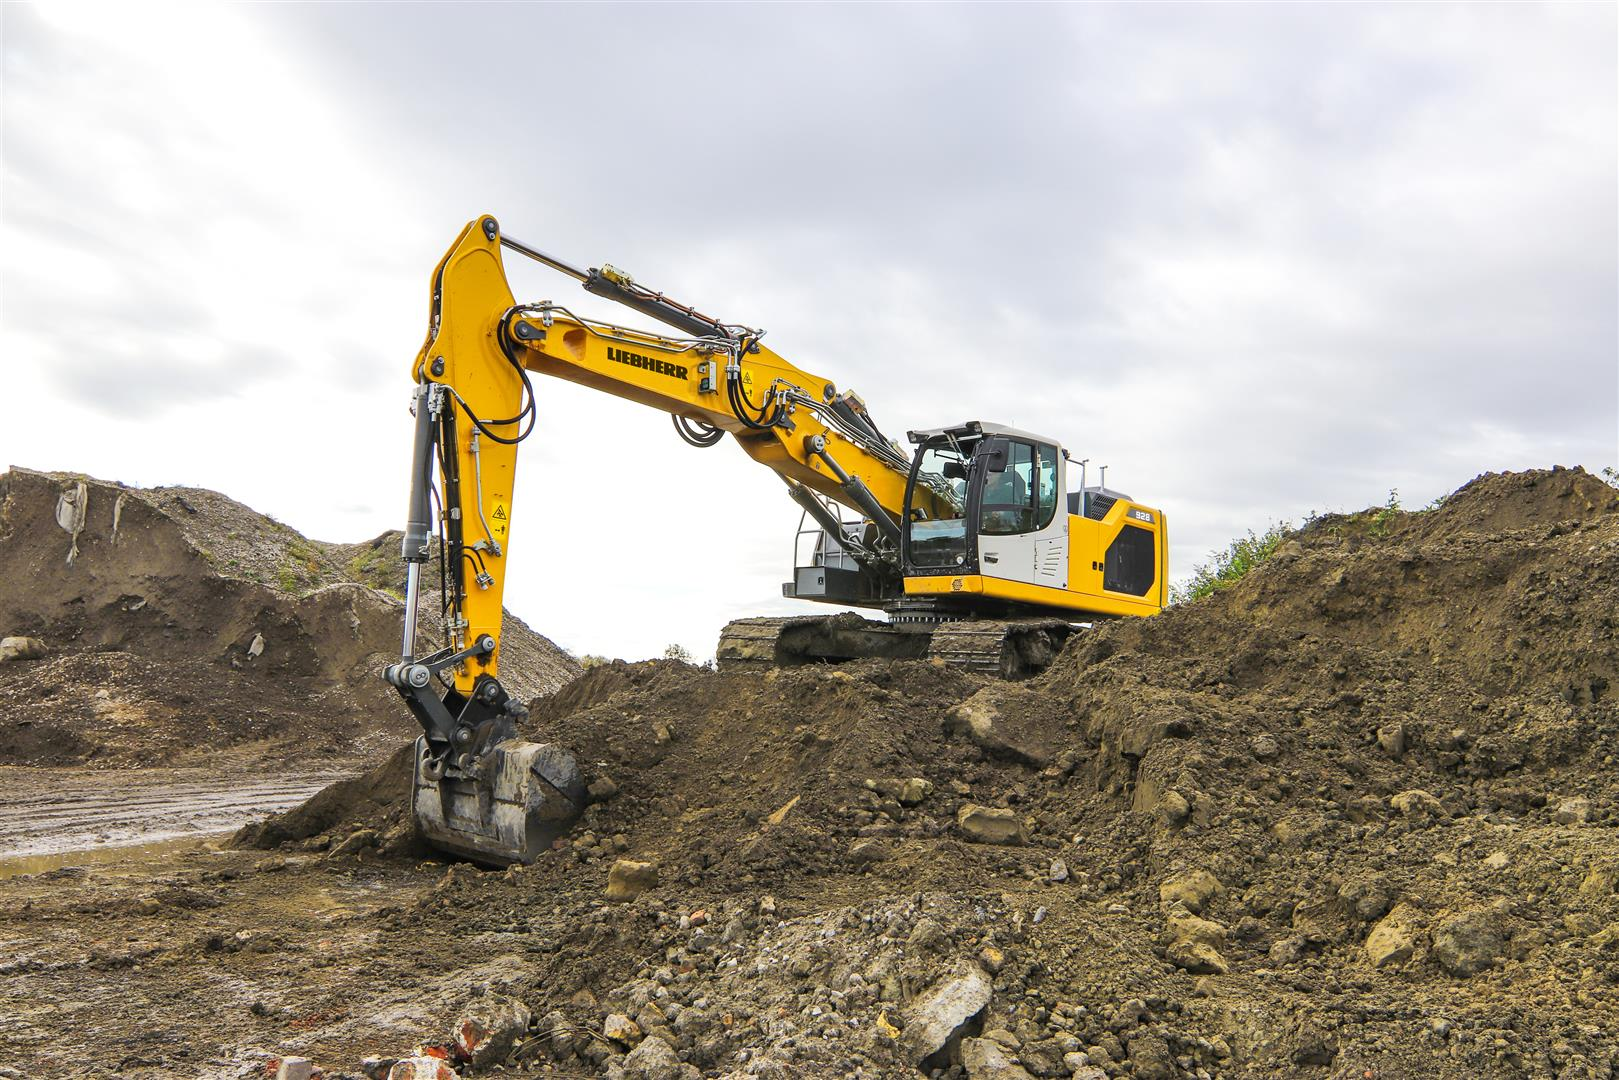 New Liebherr R 928 G8 crawler excavator: The new addition to the Generation 8 family